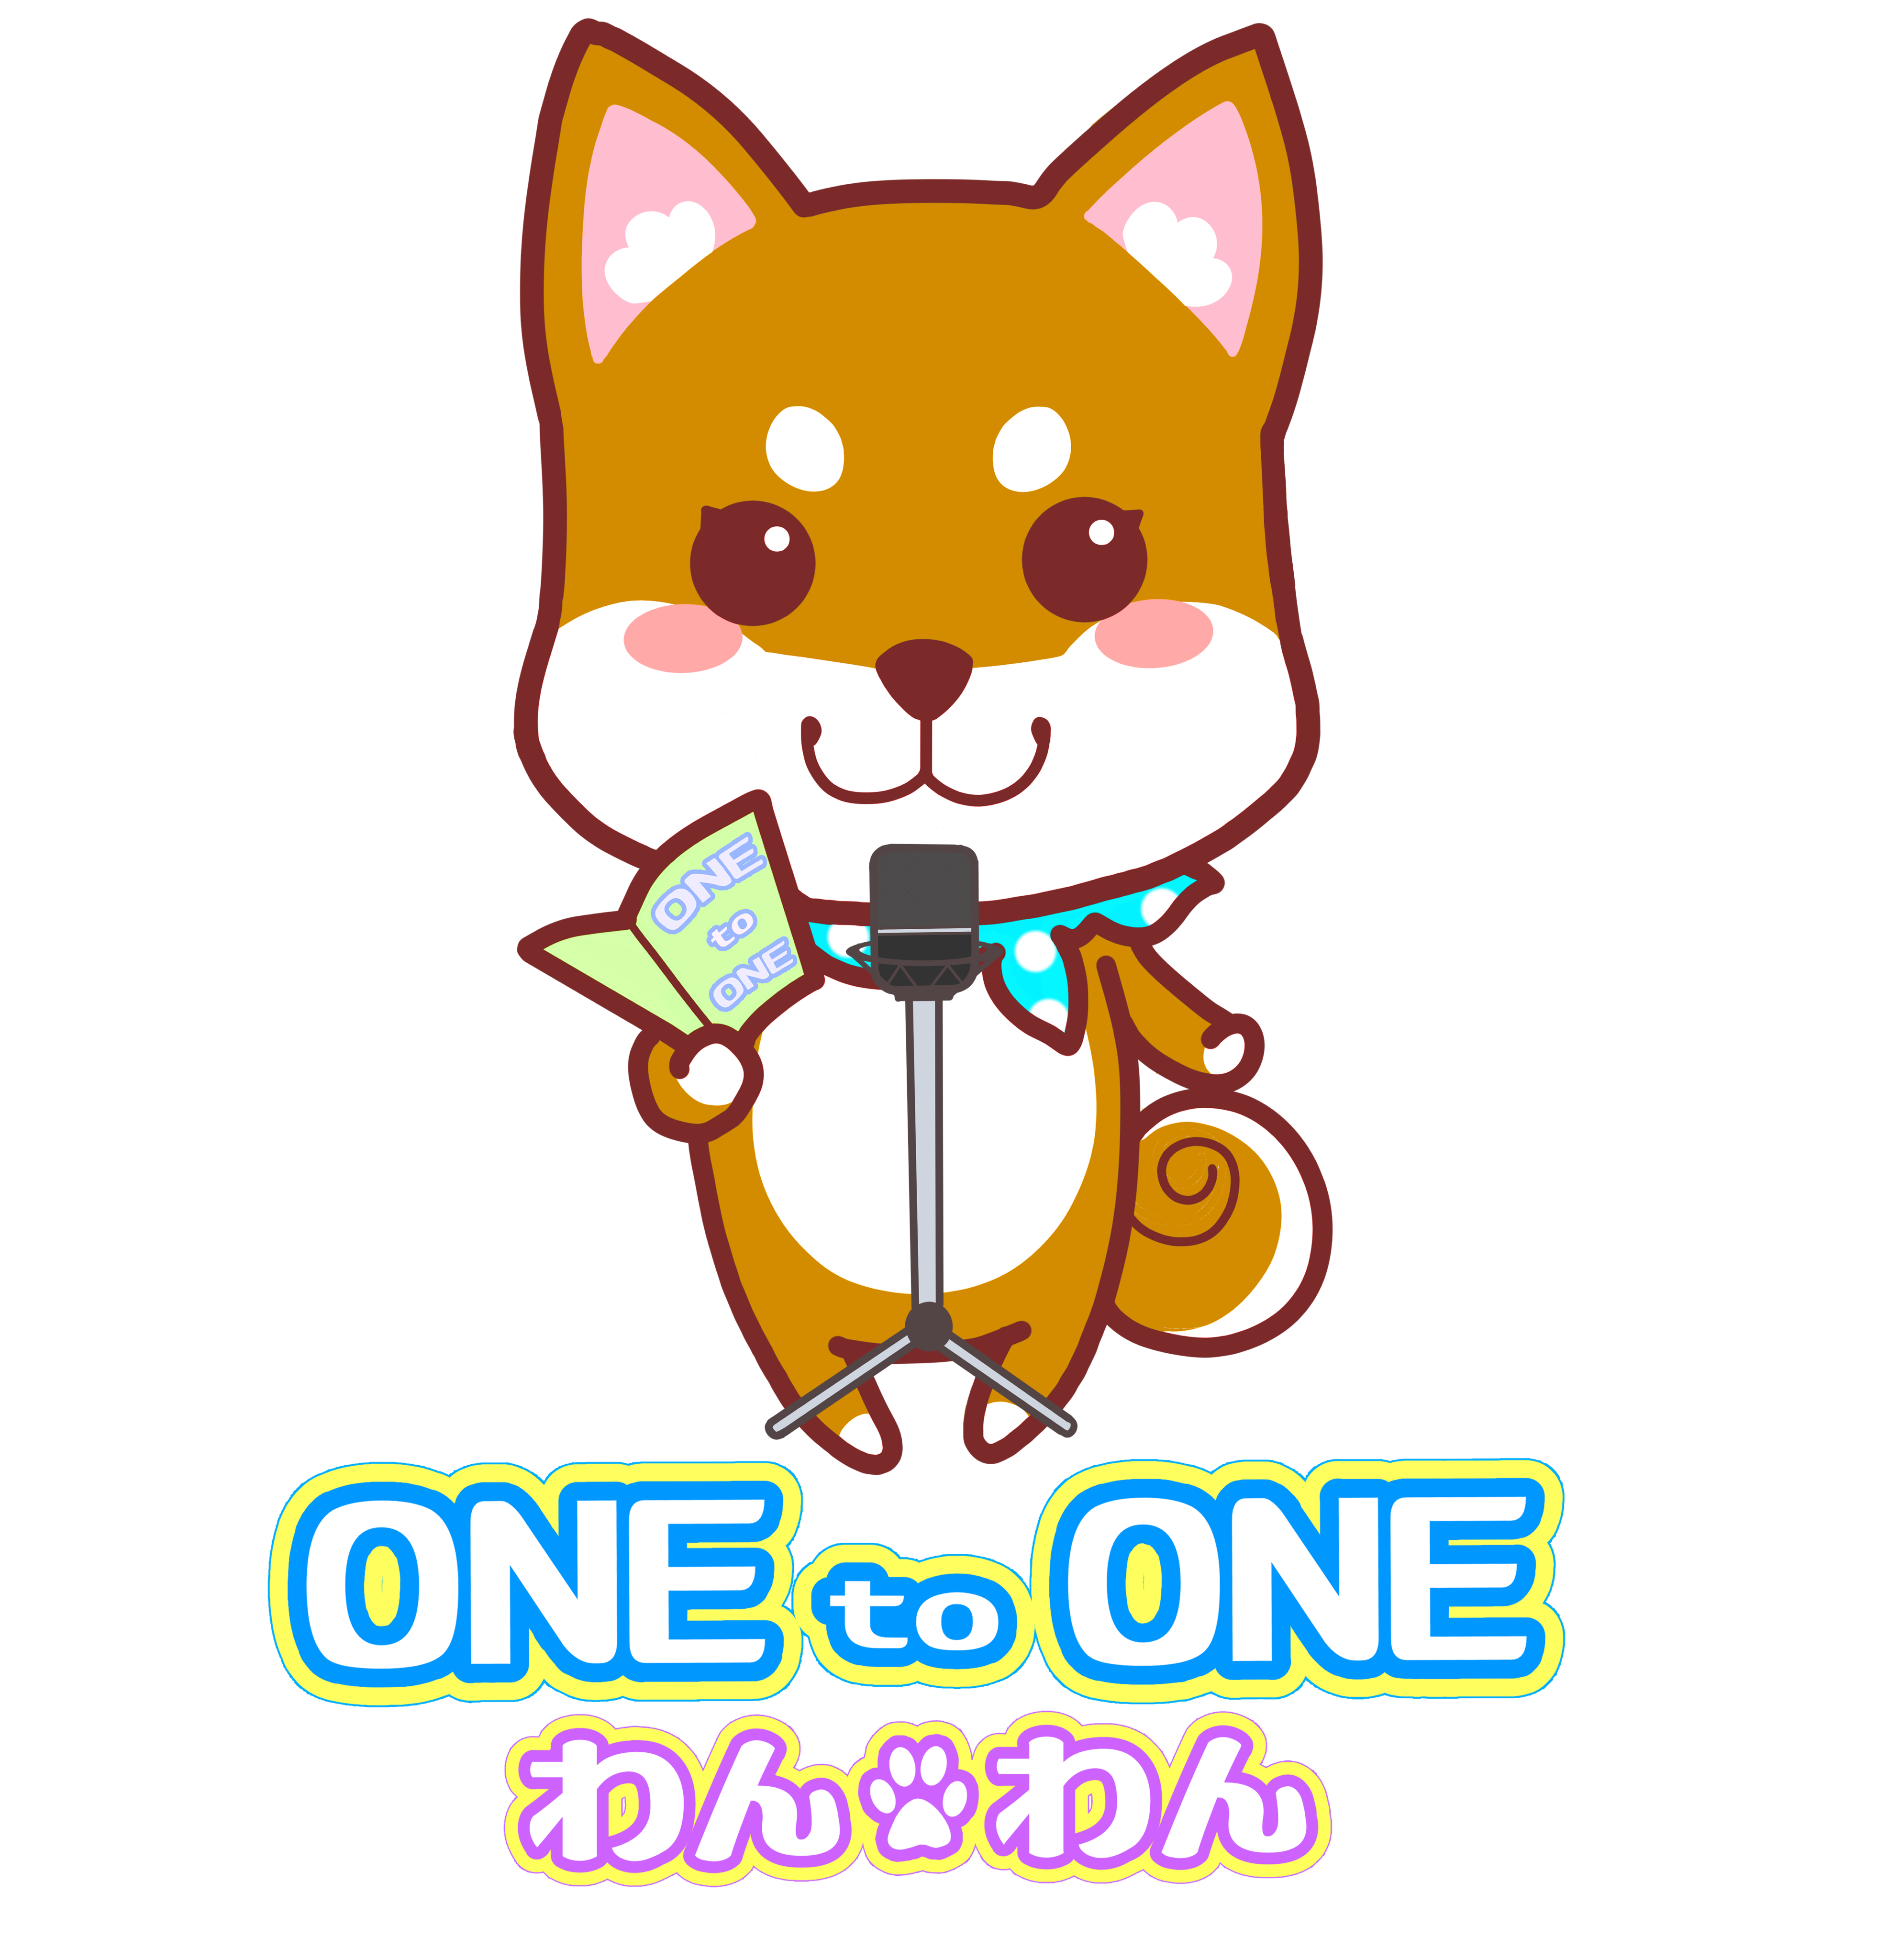 ONE to ONE 声優・俳優・ナレータースクール